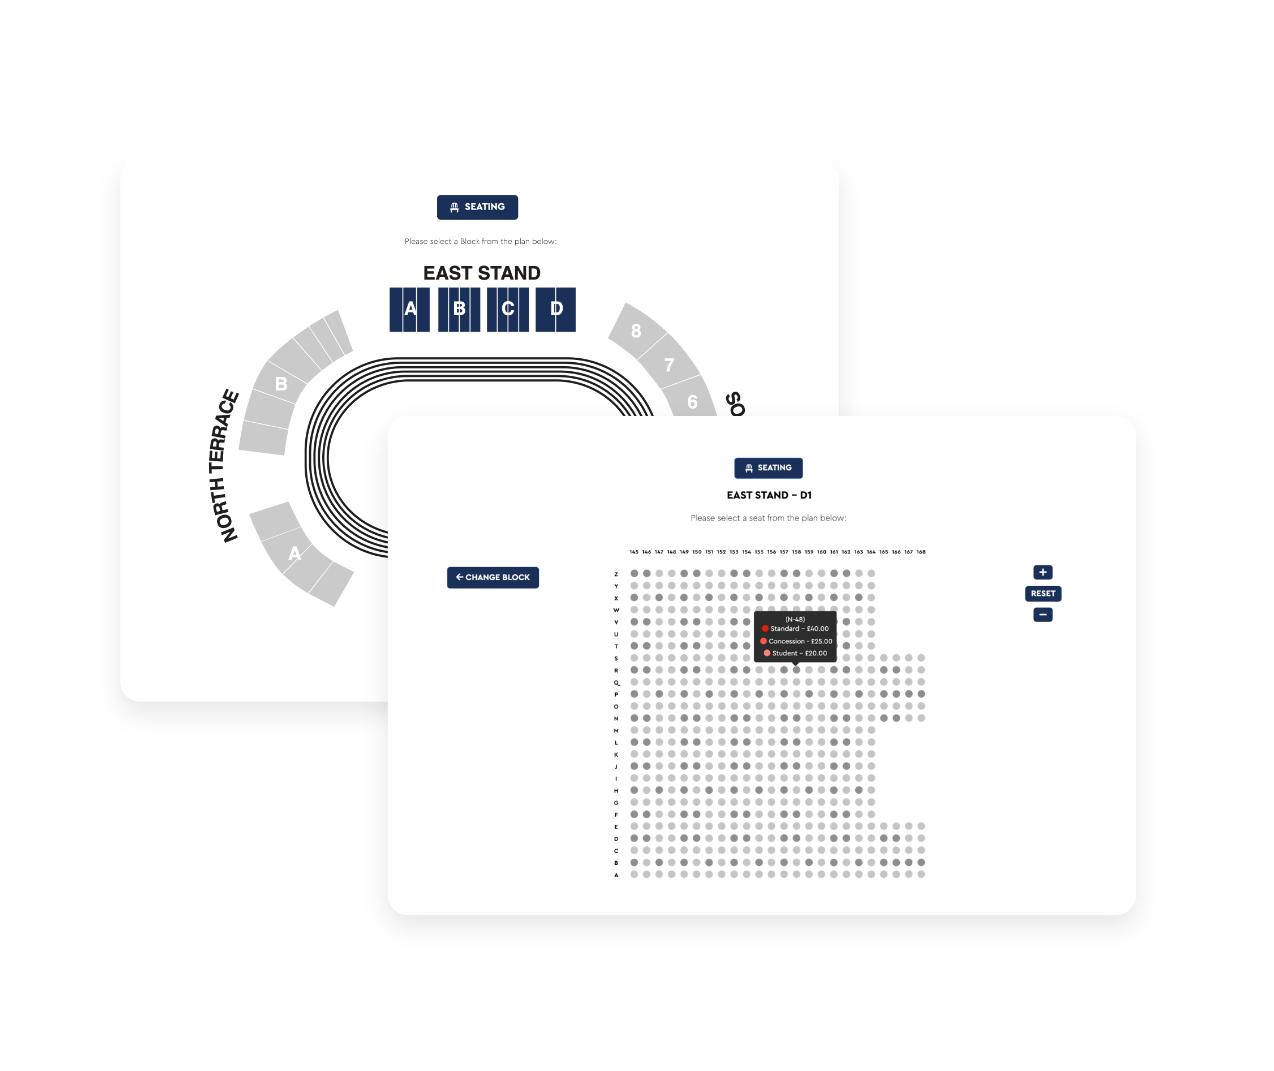 Seatedly's interactive seat mapping